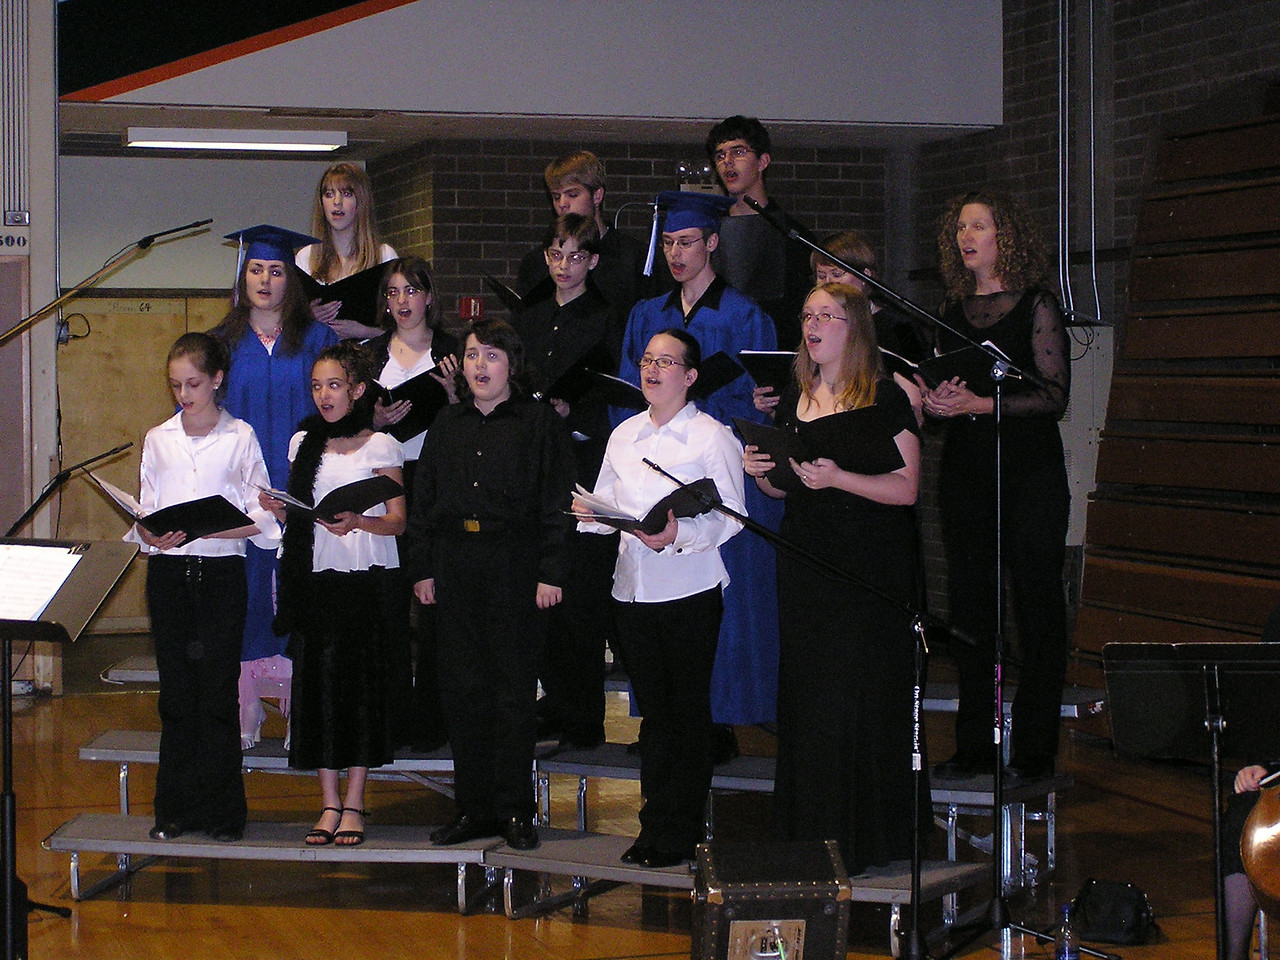 Kevin sang in the choir, too.  He is on the 2nd row, 4th from left.  Mary also sang in the home school choir.  She is standing on his left and not well seen.